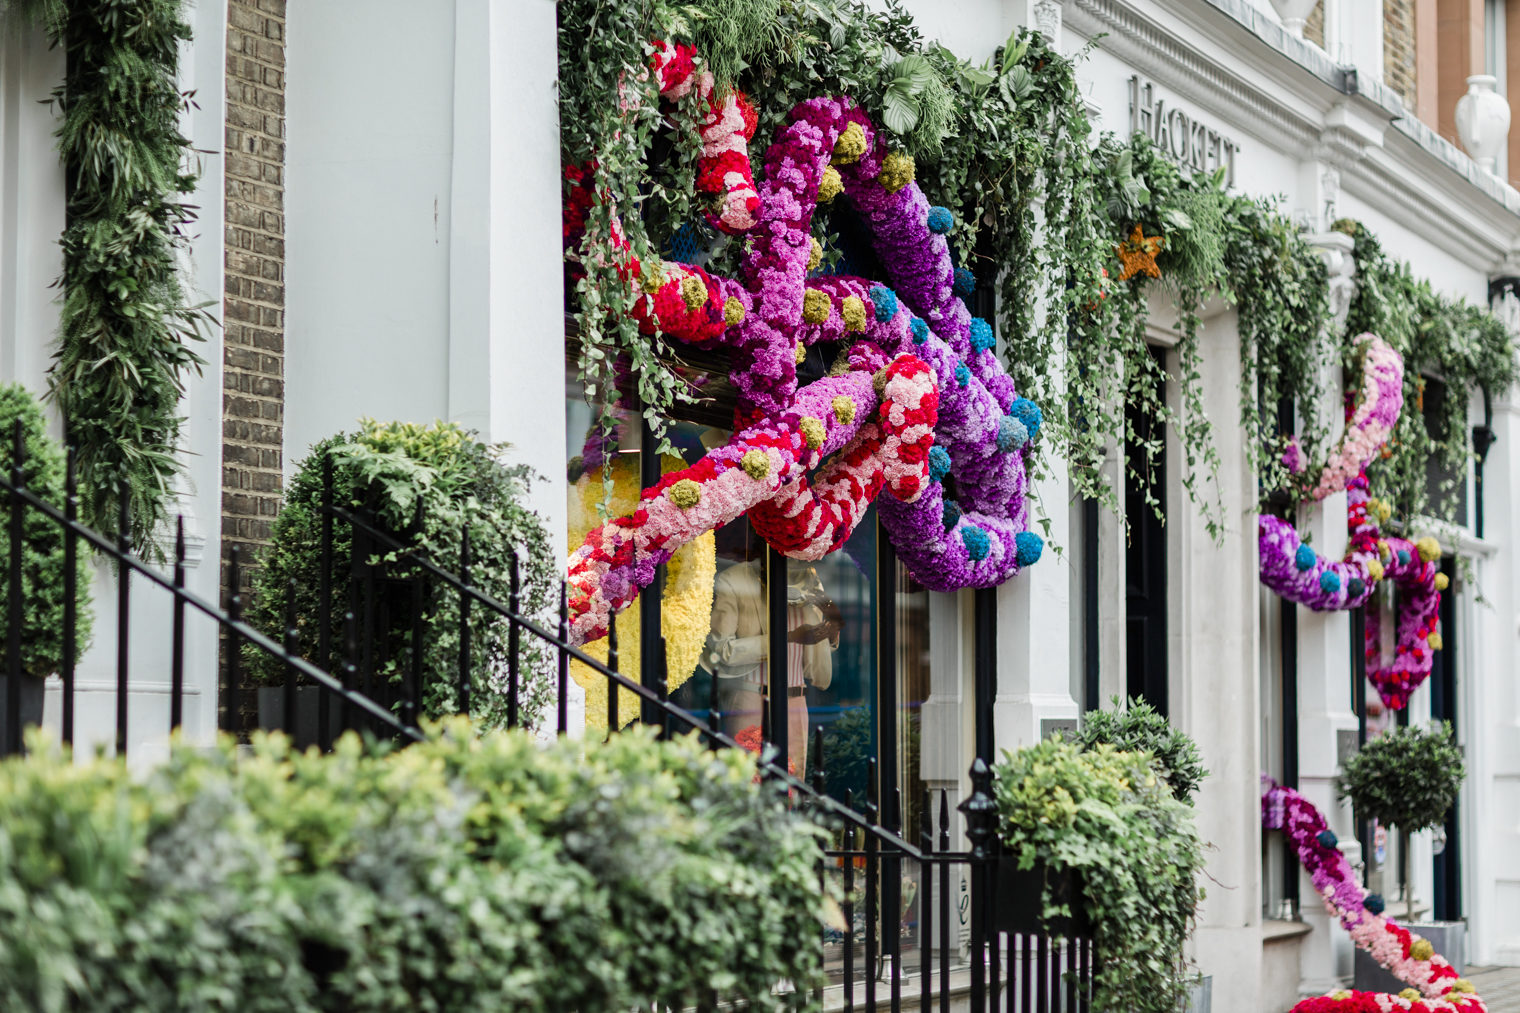 Wildabout for Hackett Chelsea in Bloom